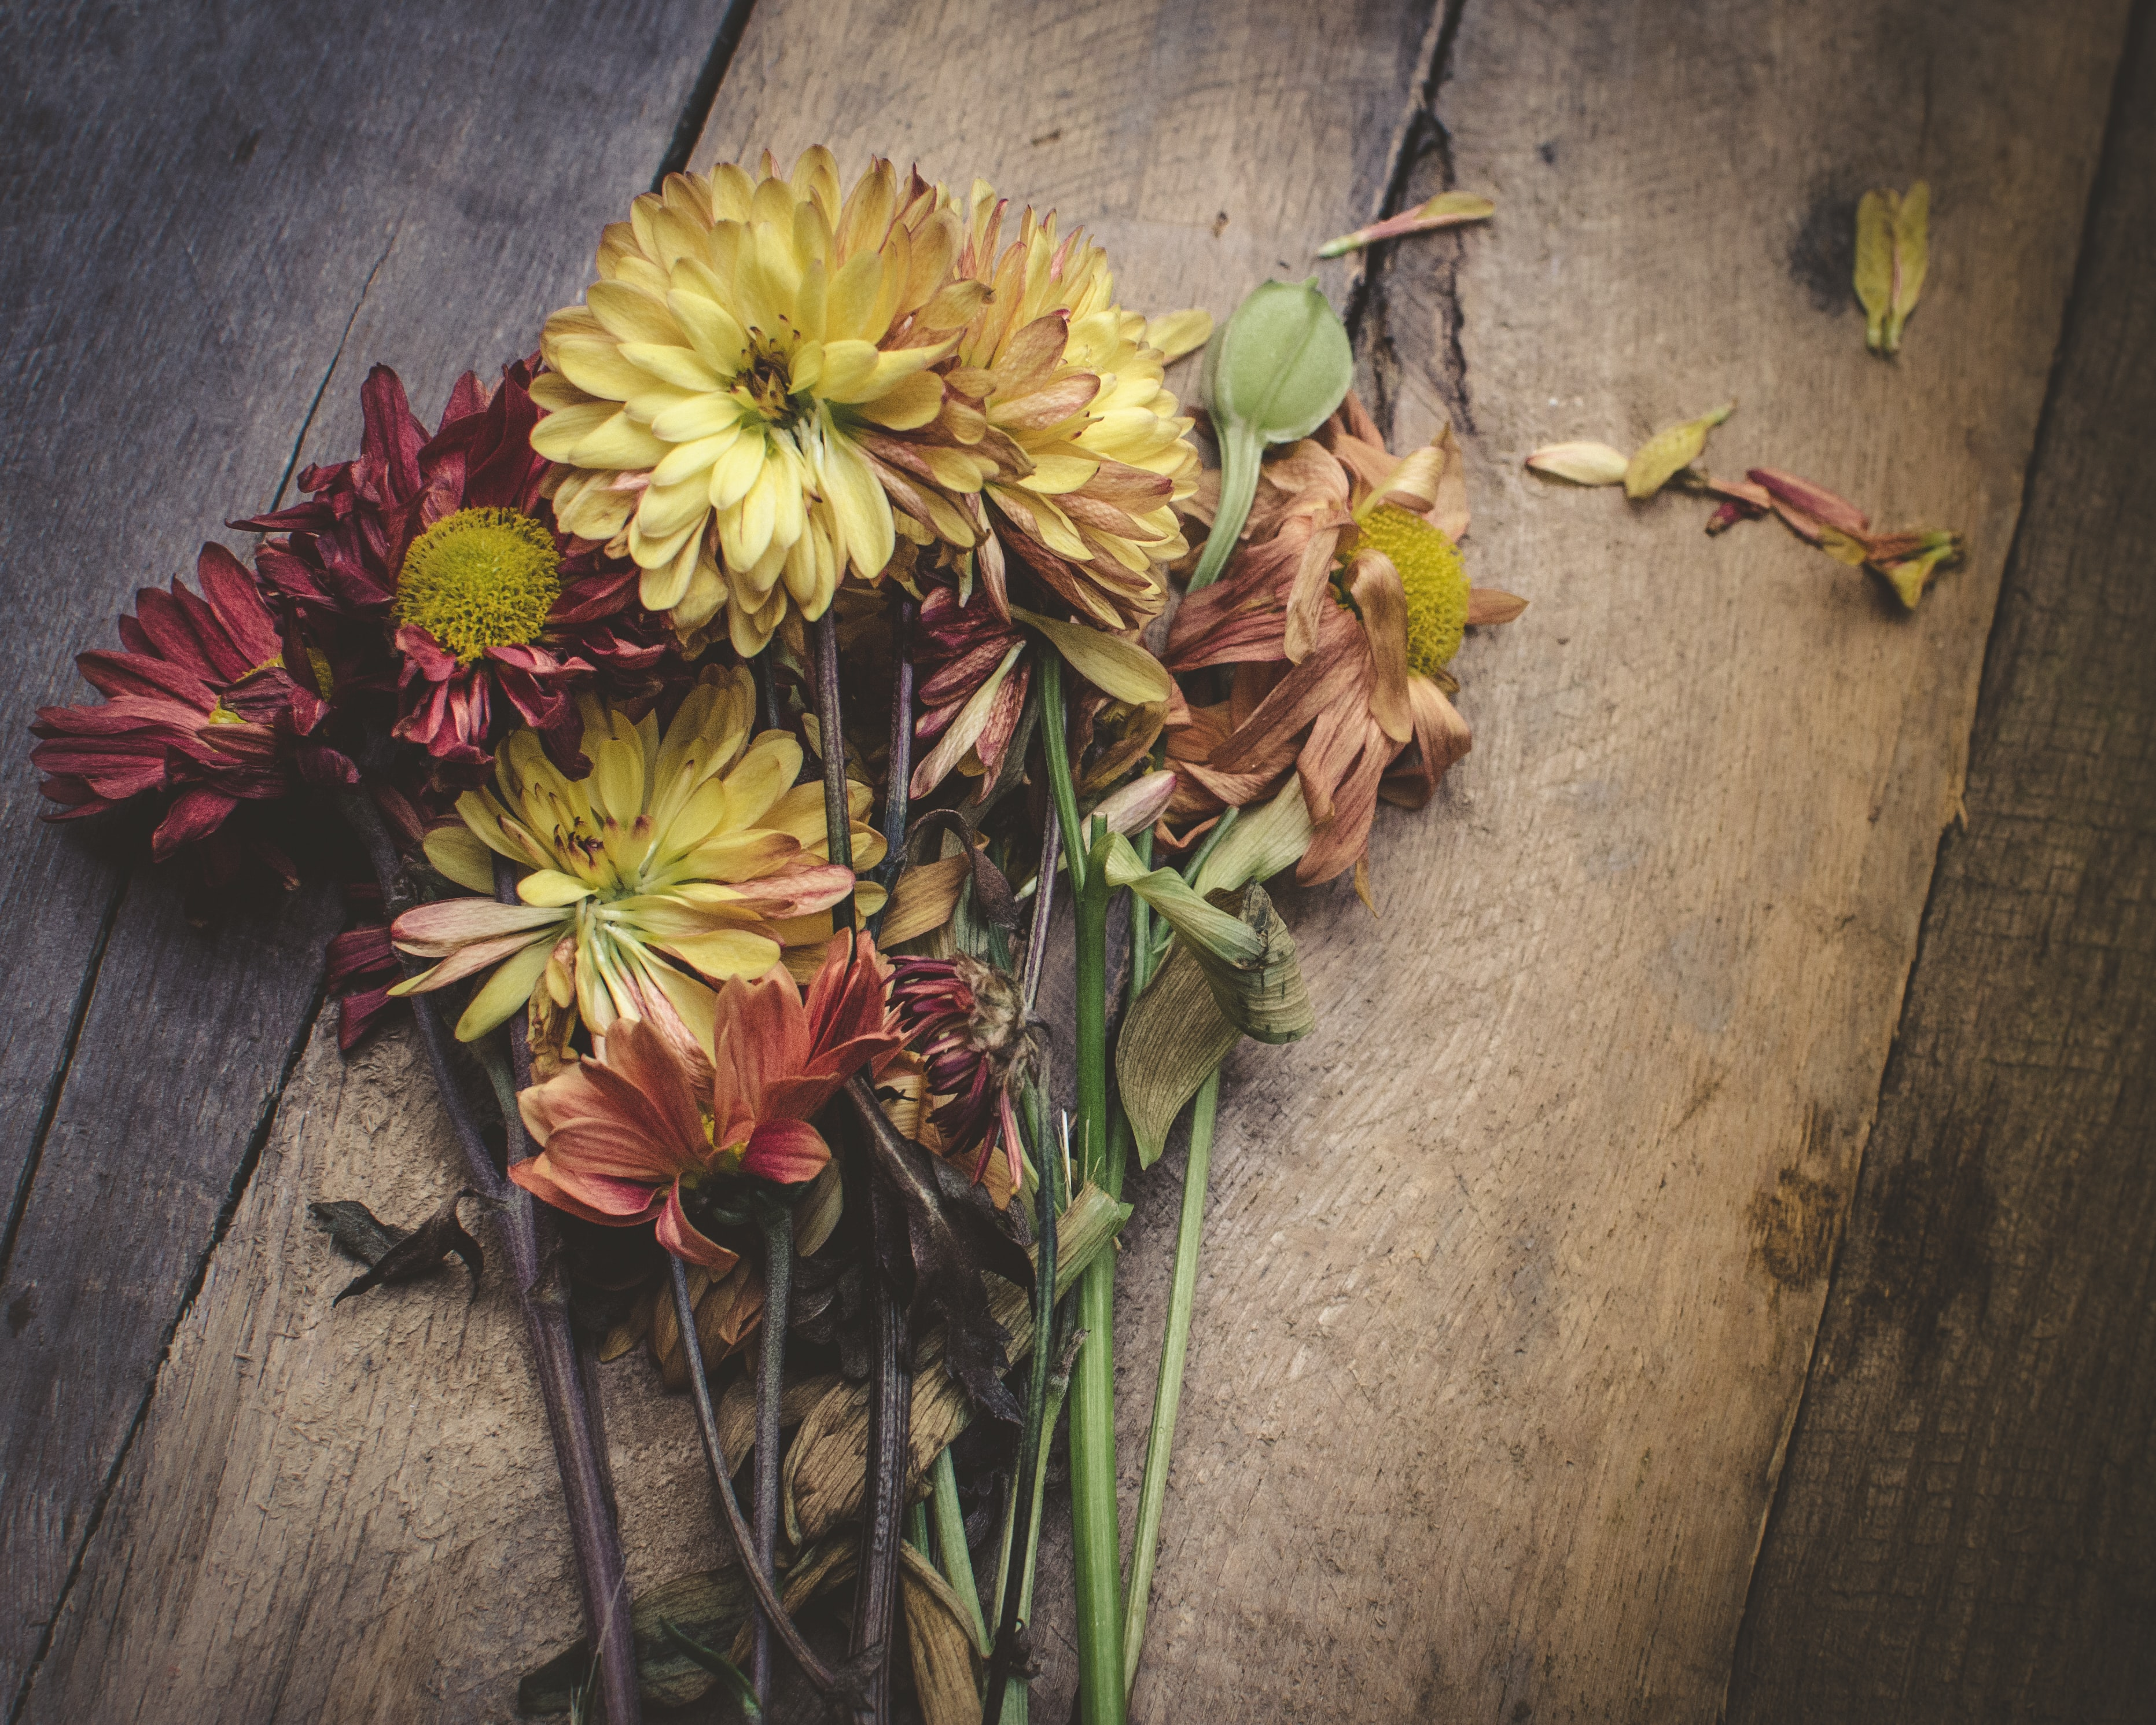 assorted flowers on brown wooden table